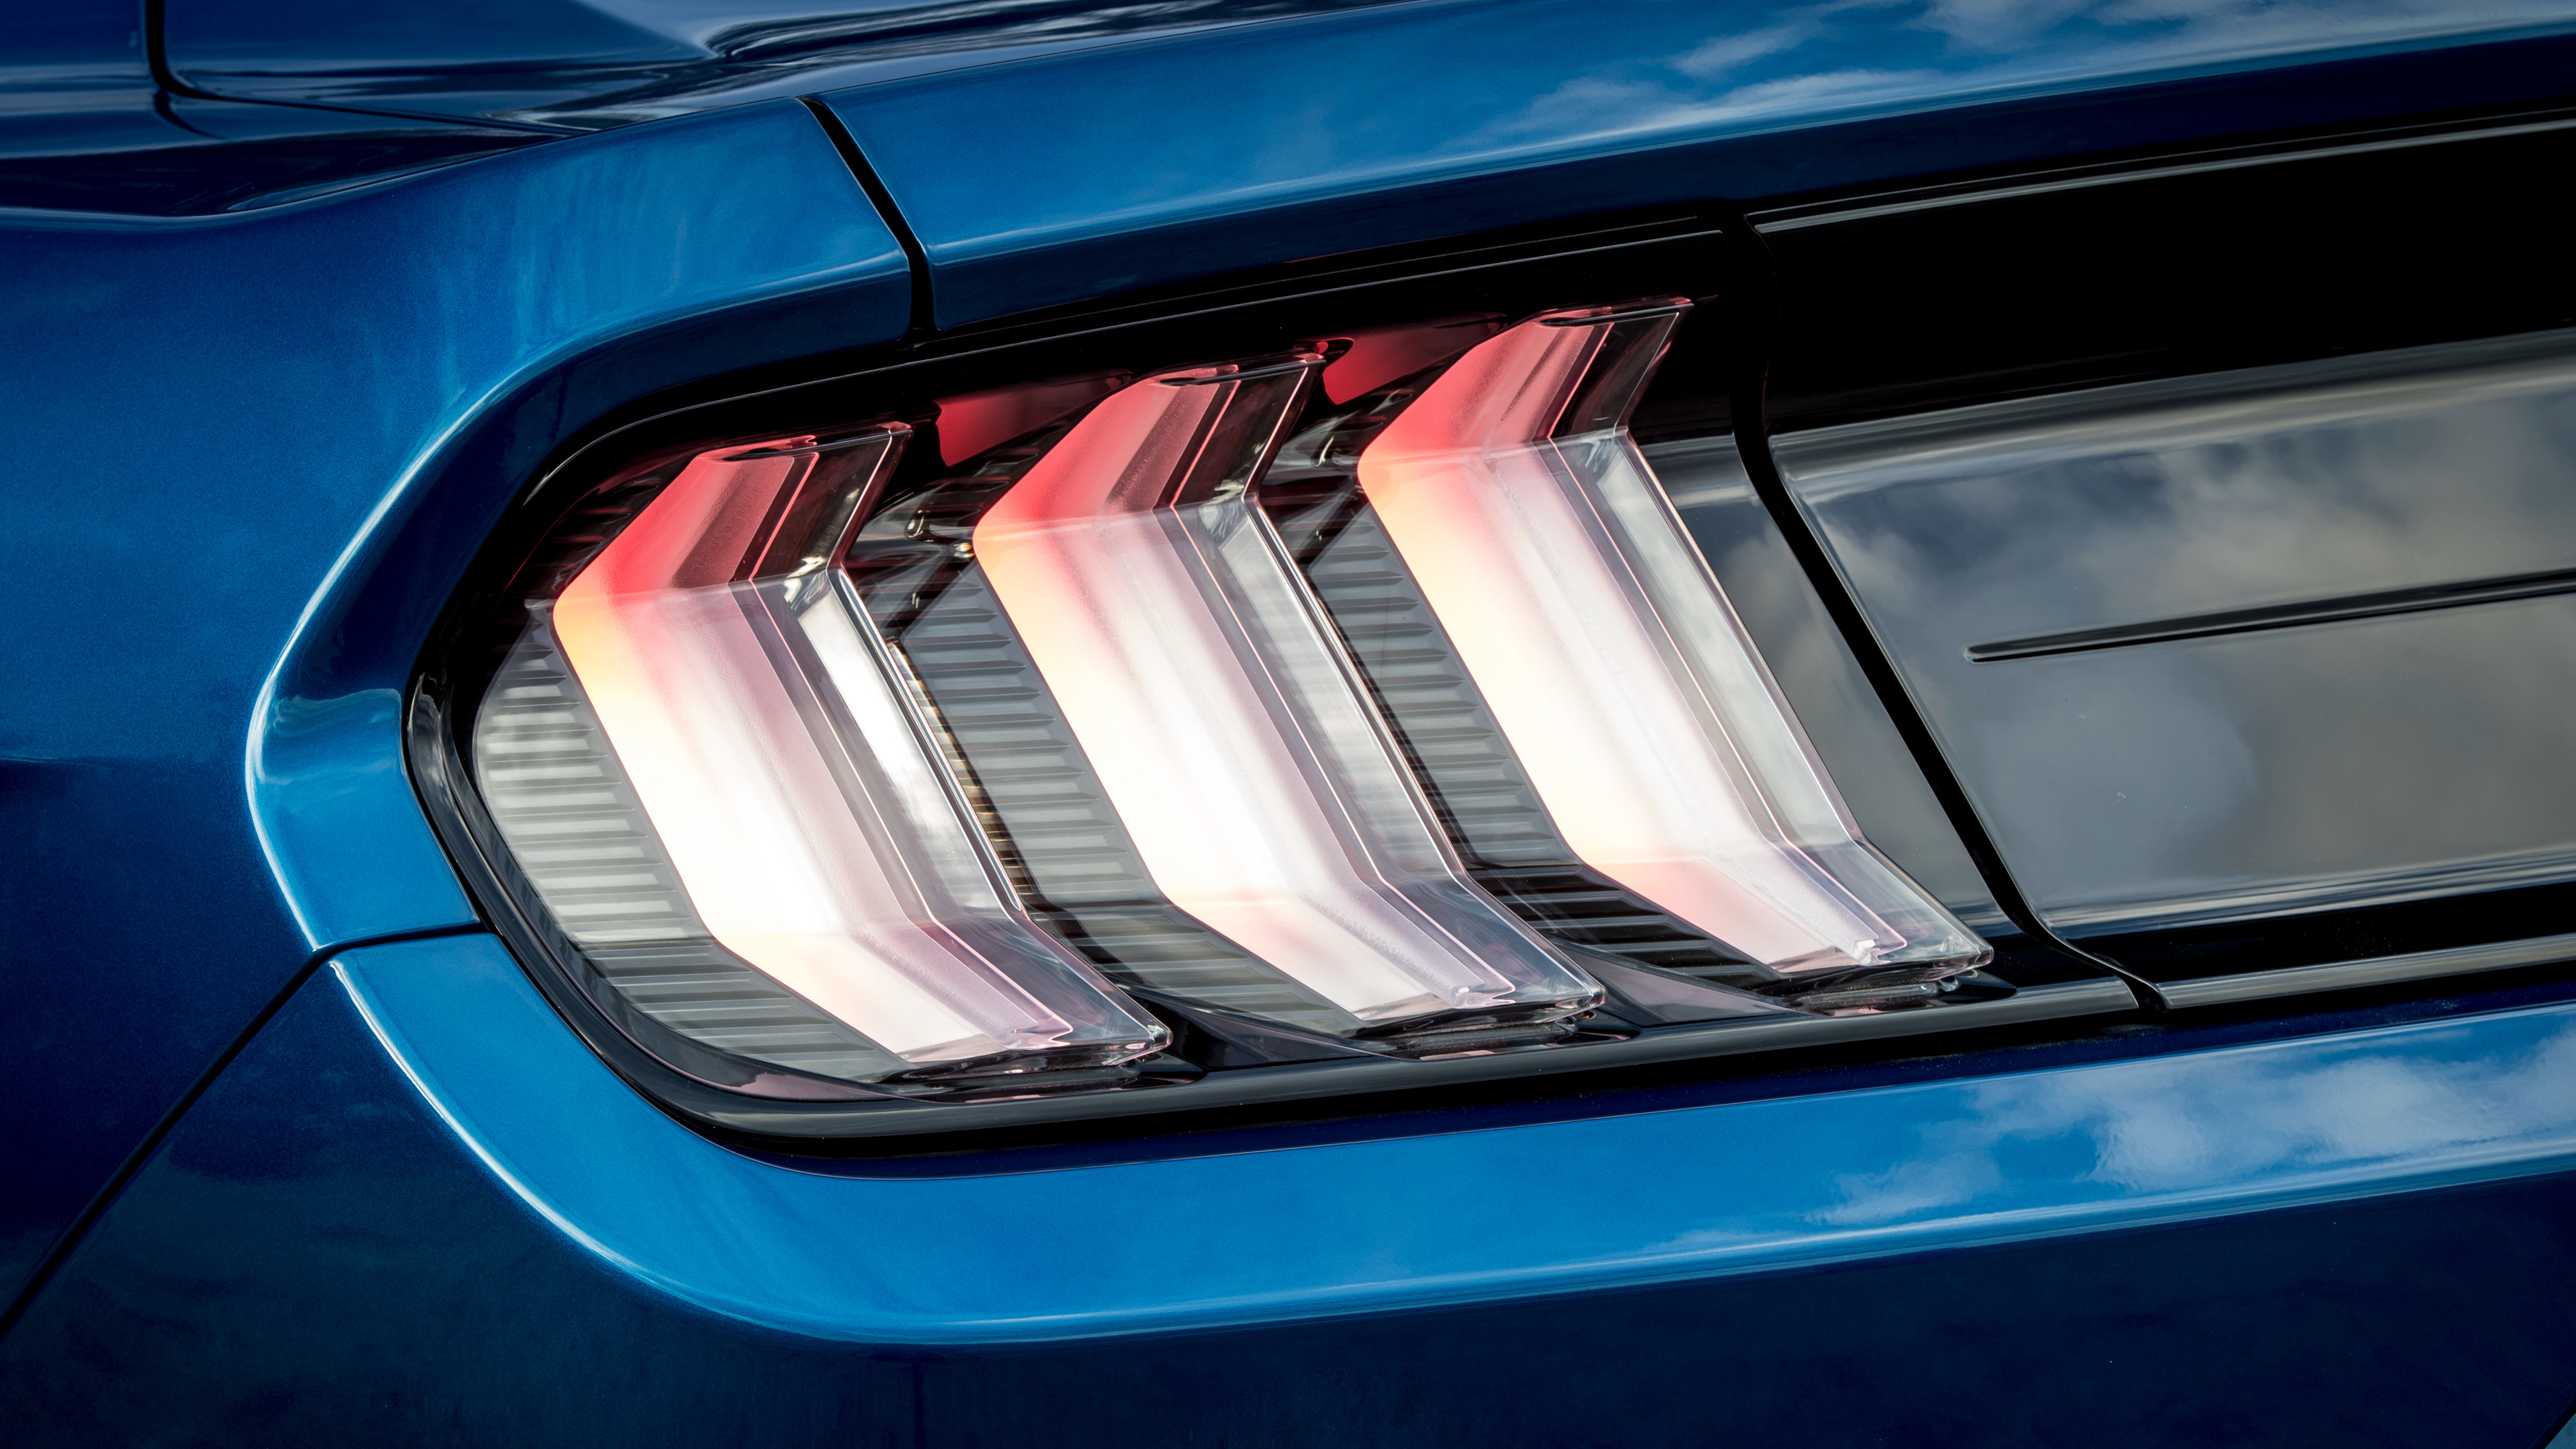 Ford Mustang Led Tail Lights 4k Wallpaper Hd Car Wallpapers Id 10079